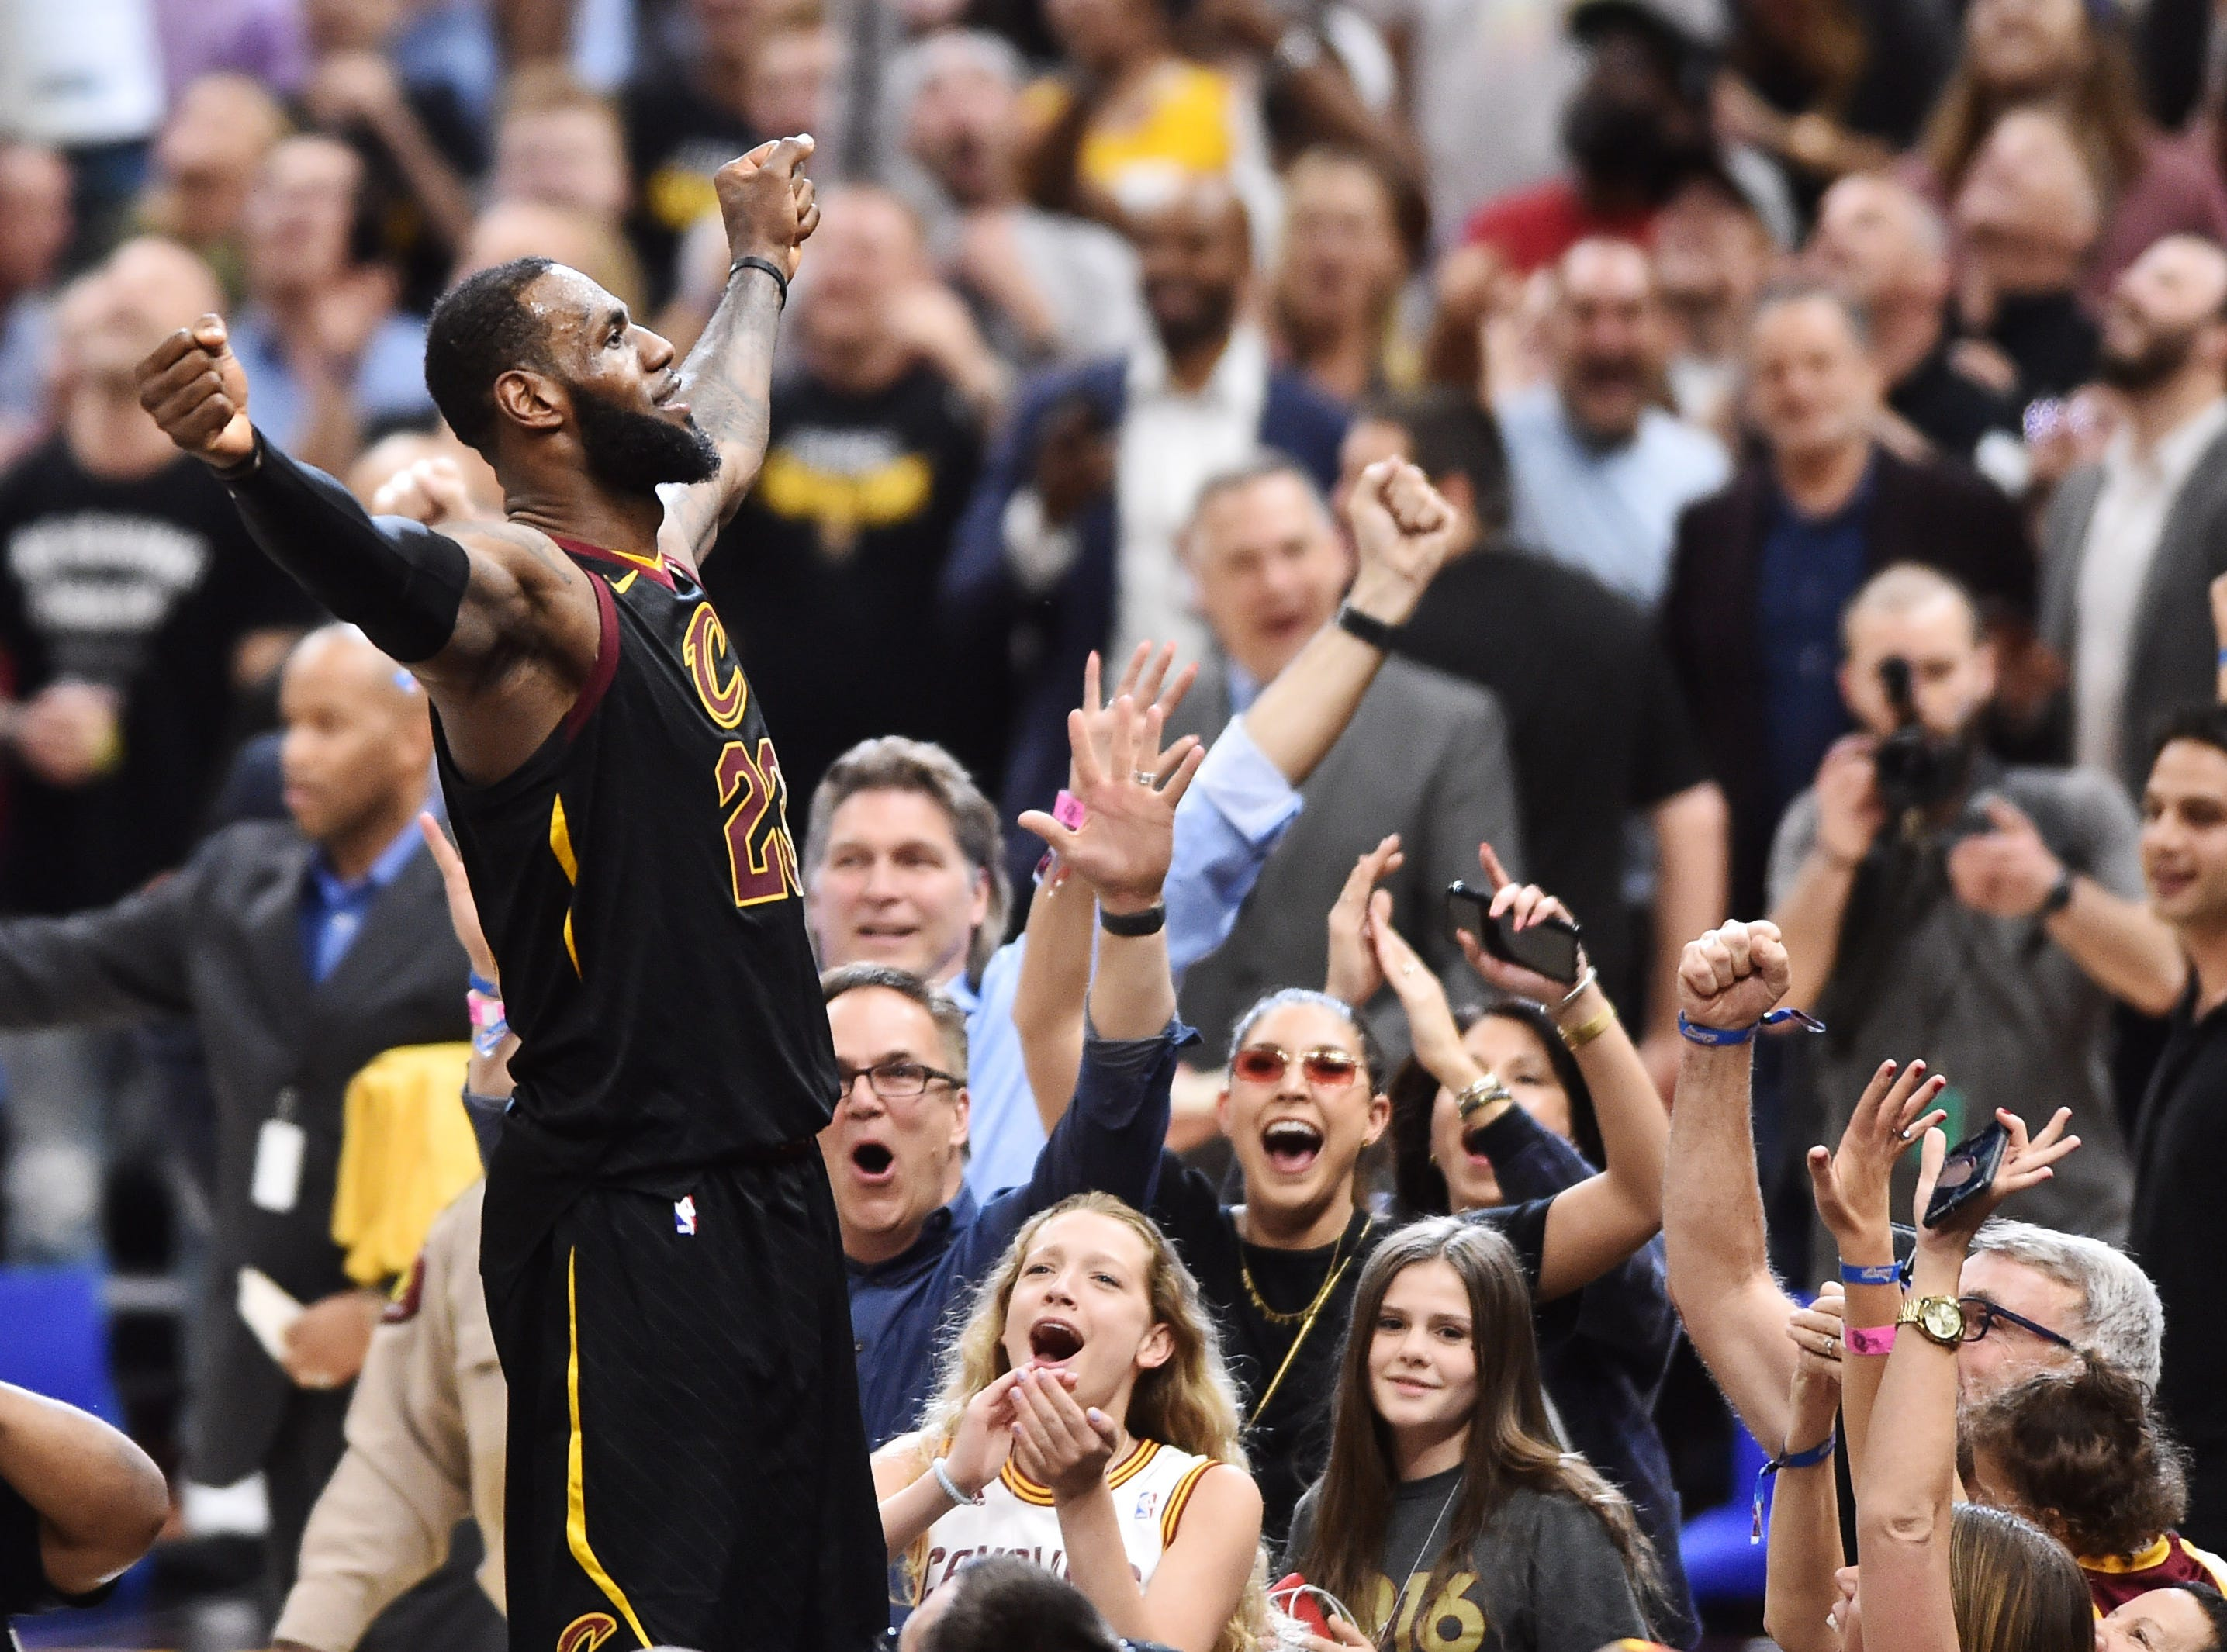 May 5: Cleveland Cavaliers forward LeBron James celebrates after hitting the Game 3 winner against the Toronto Raptors in their second-round series.